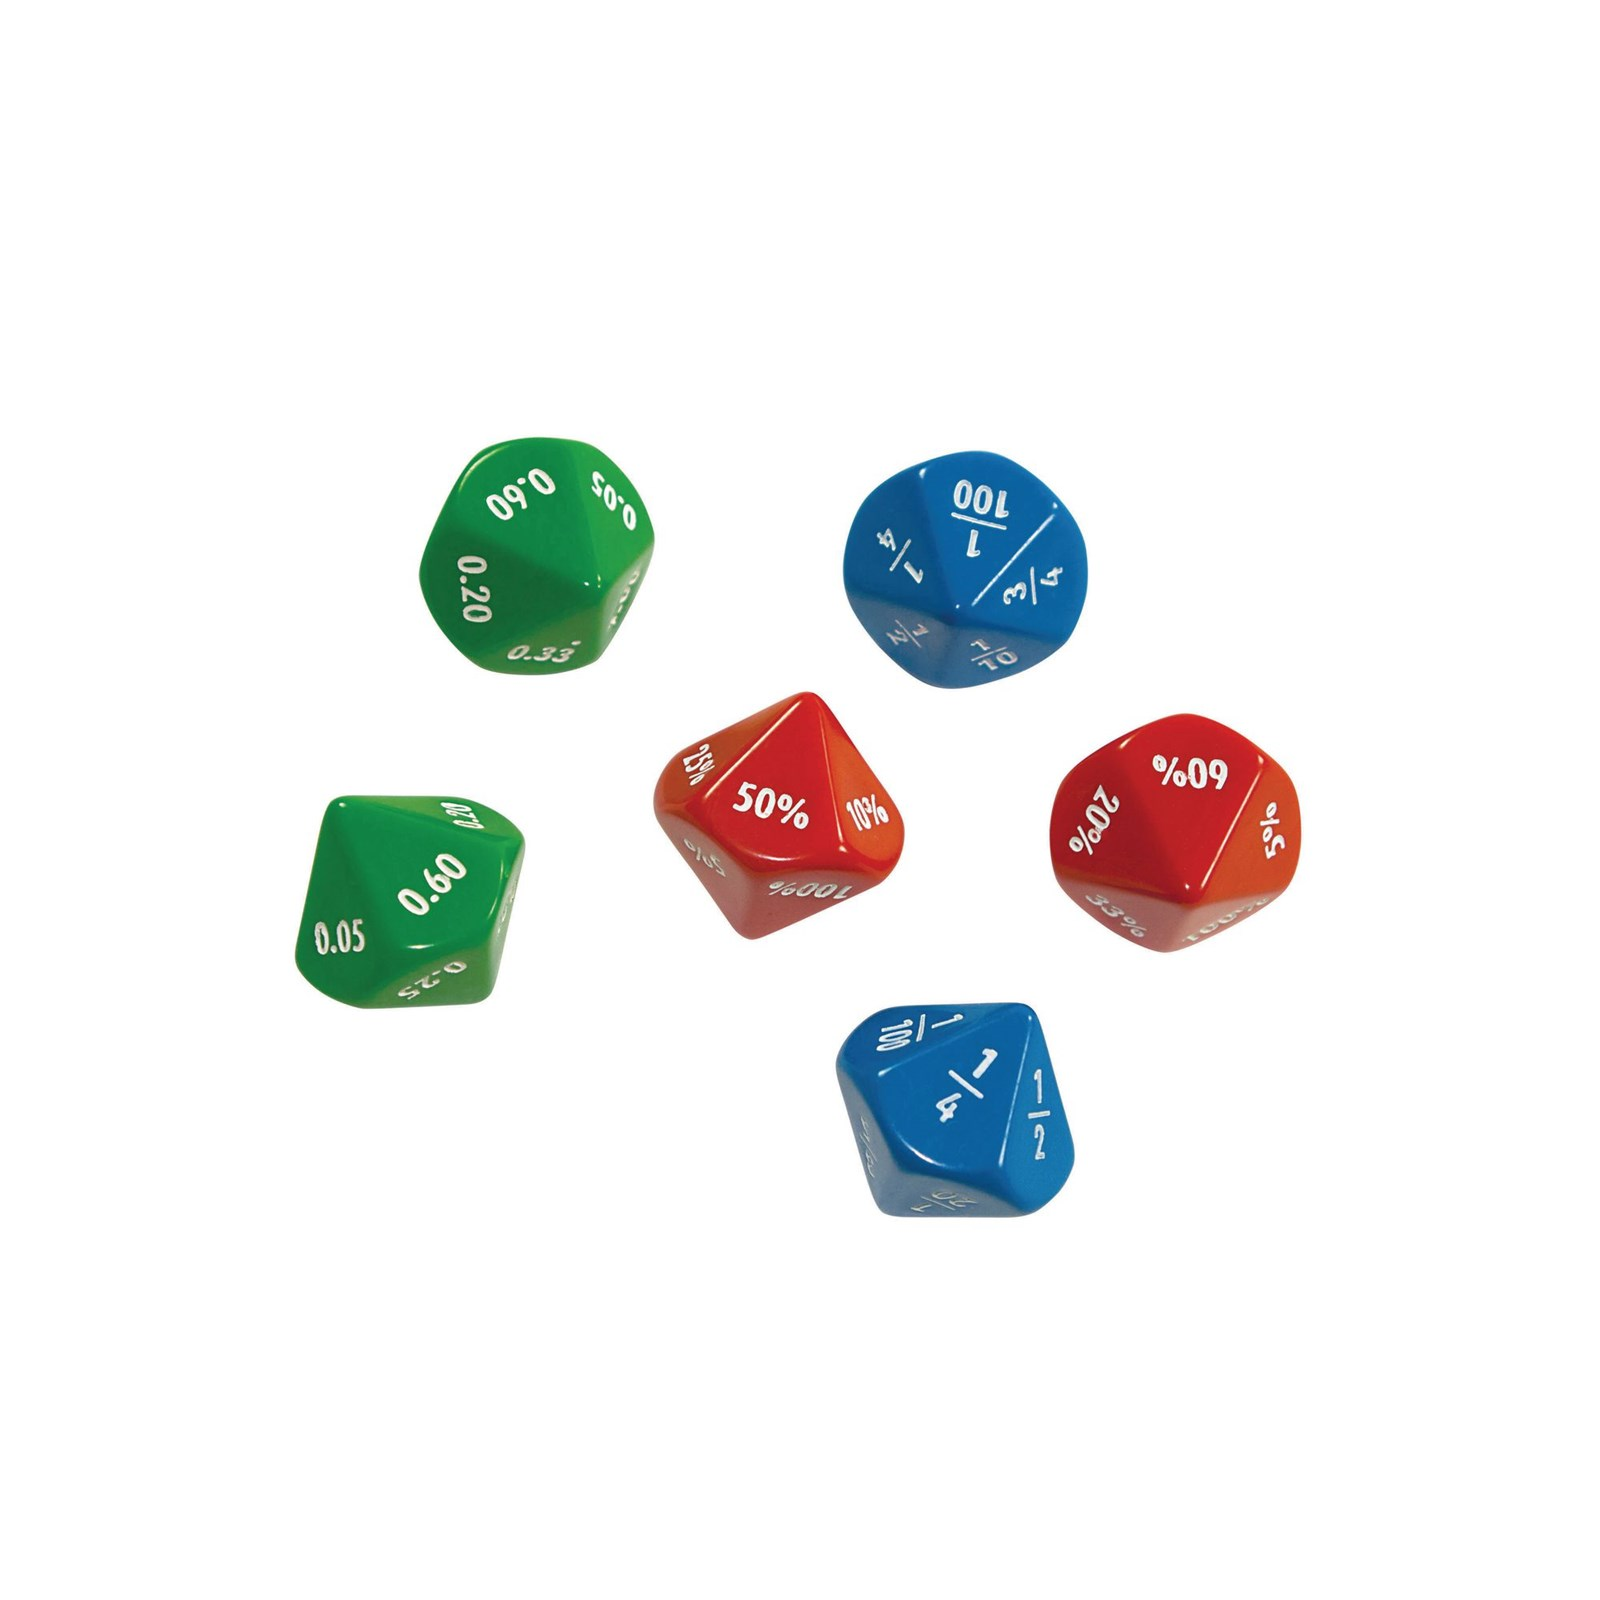 Equivalence Dice - Pack of 6